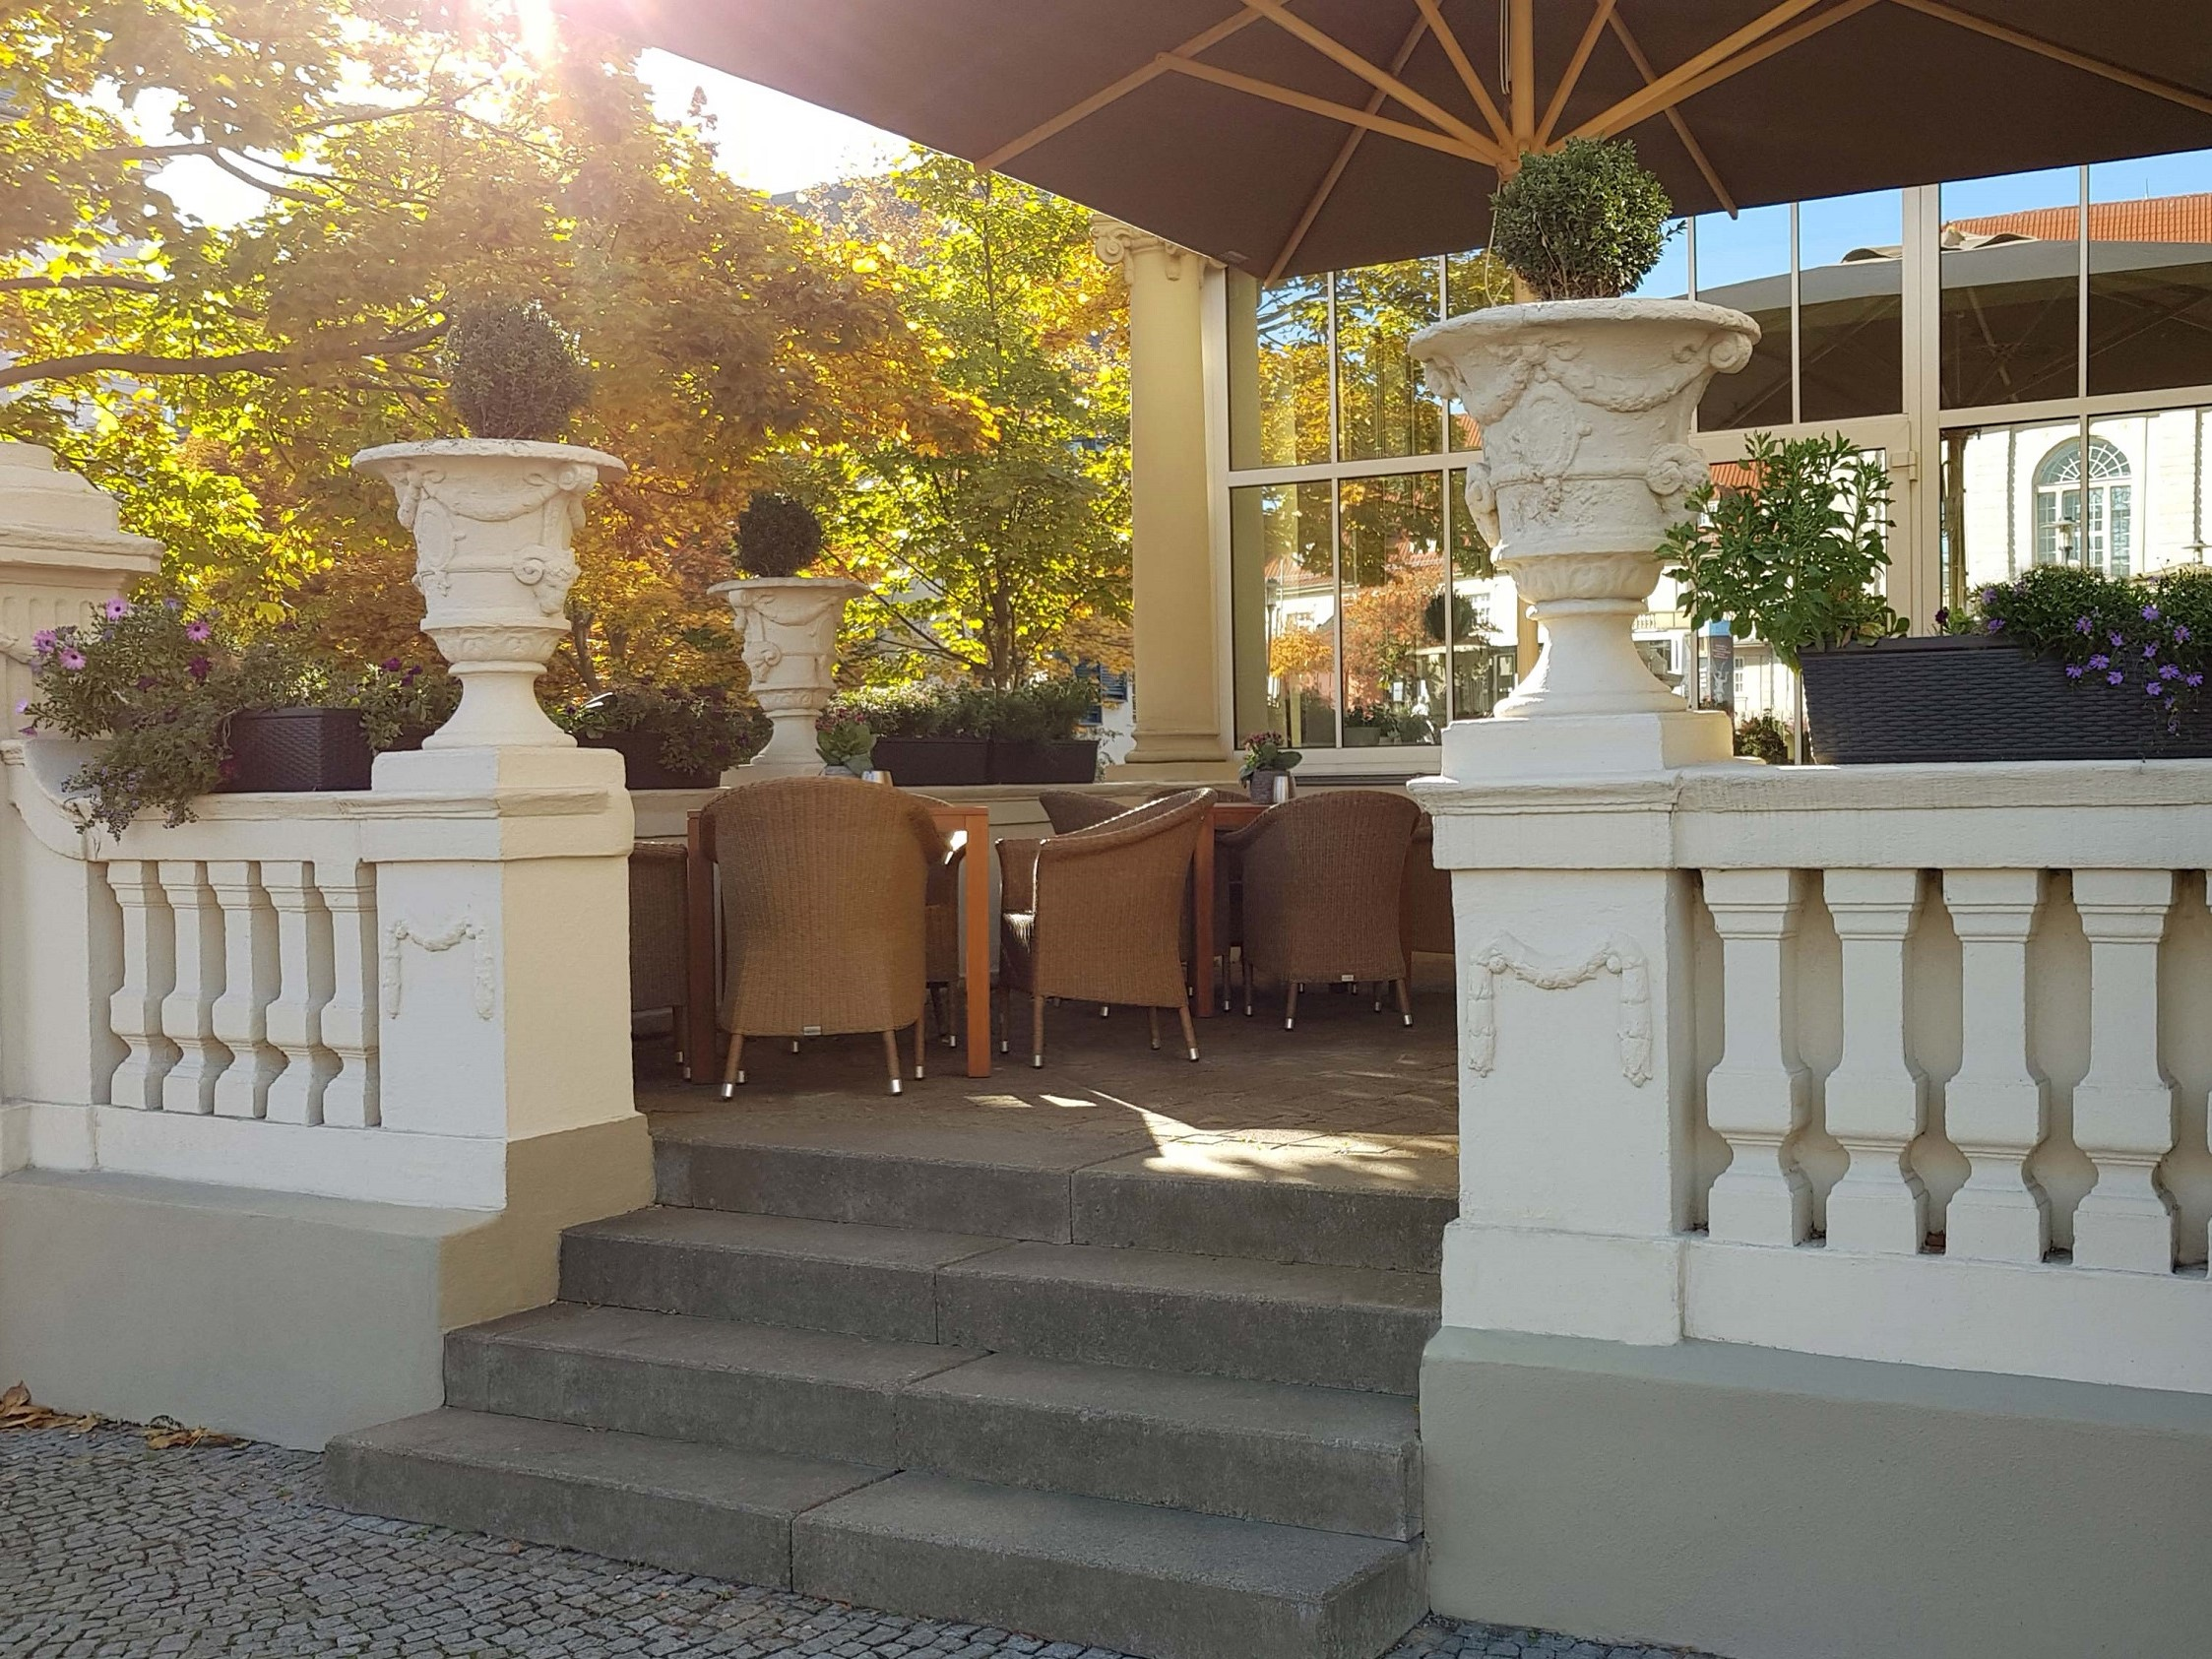 The terrace of the hotel with comfortable wicker armchairs and colorful flower boxes.